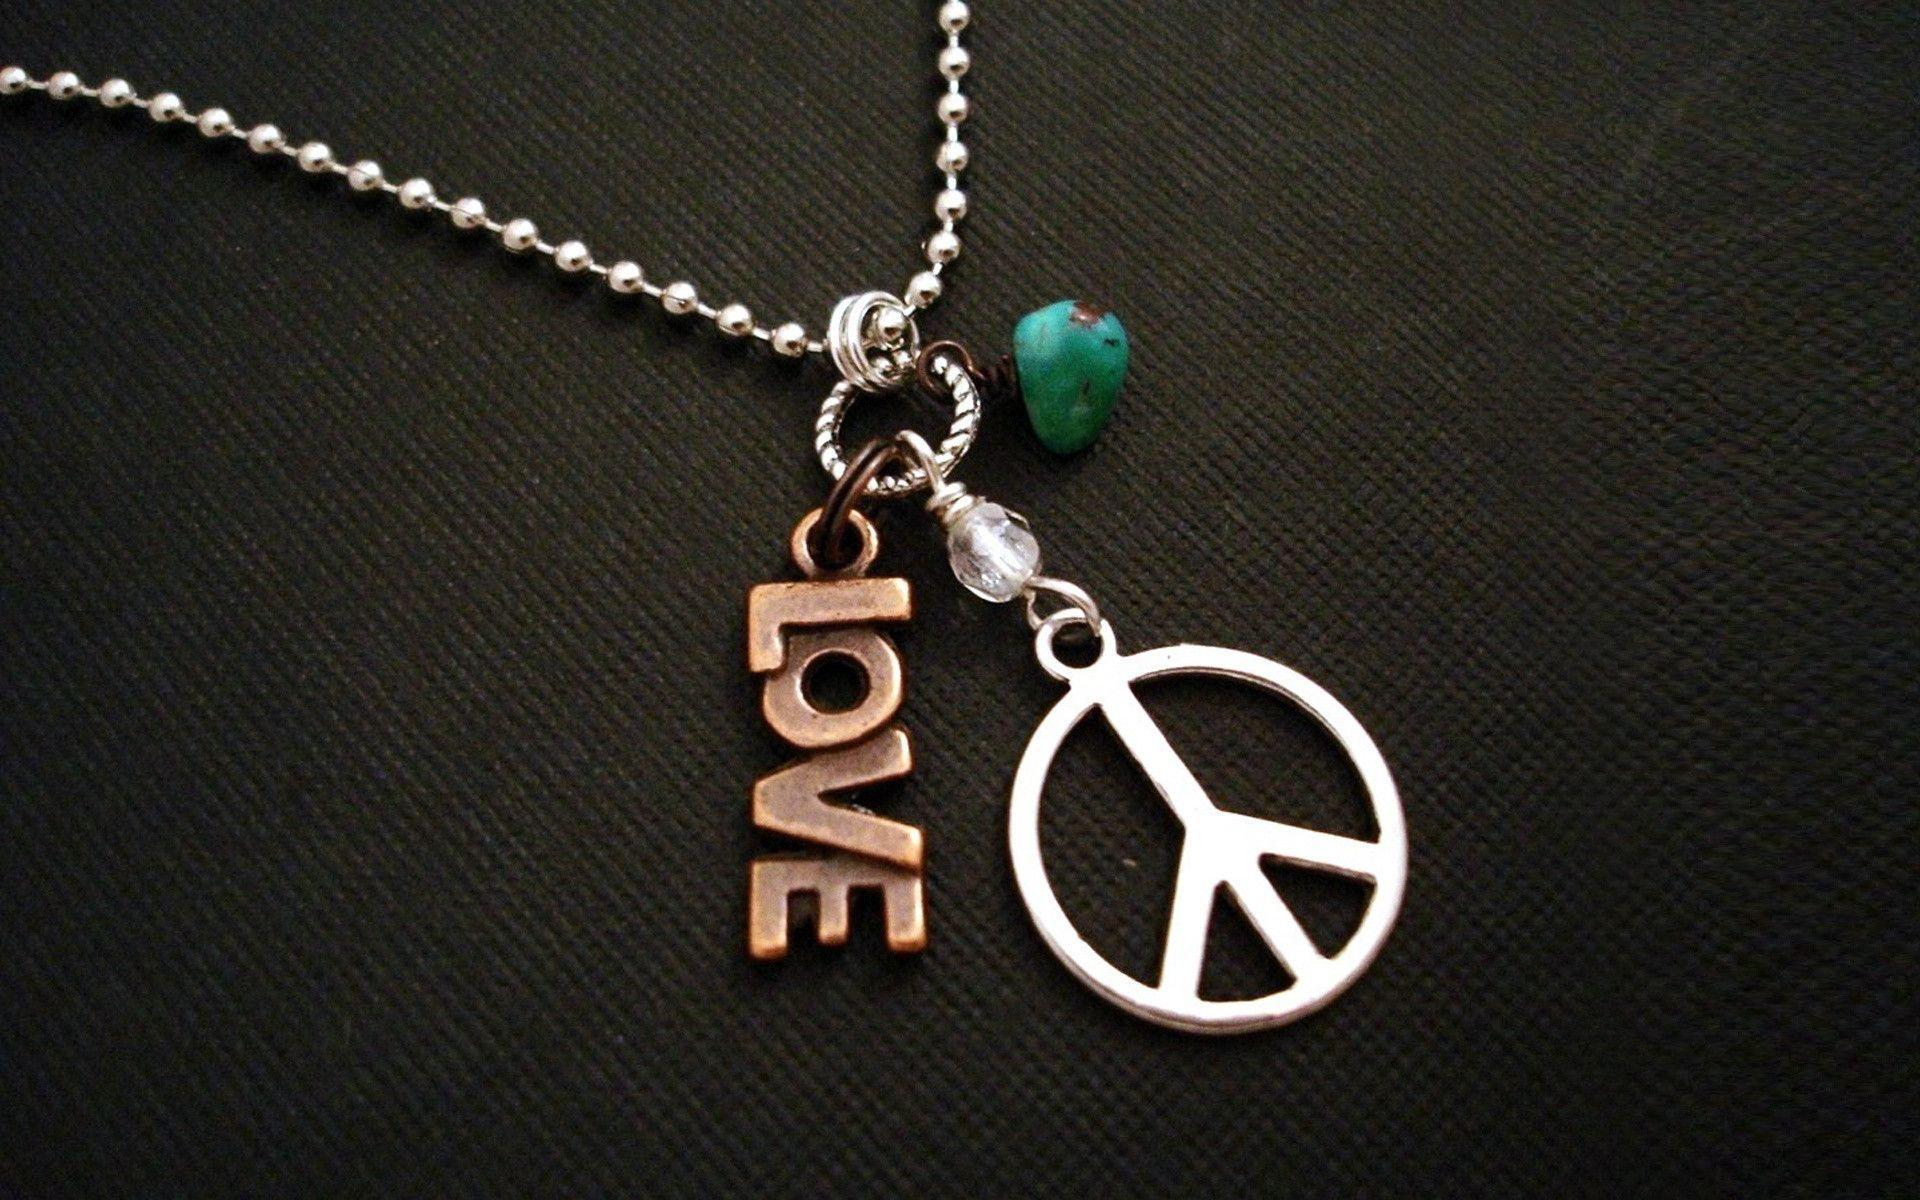 Peace And Love Iphone Wallpaper : Peace And Love Backgrounds - Wallpaper cave